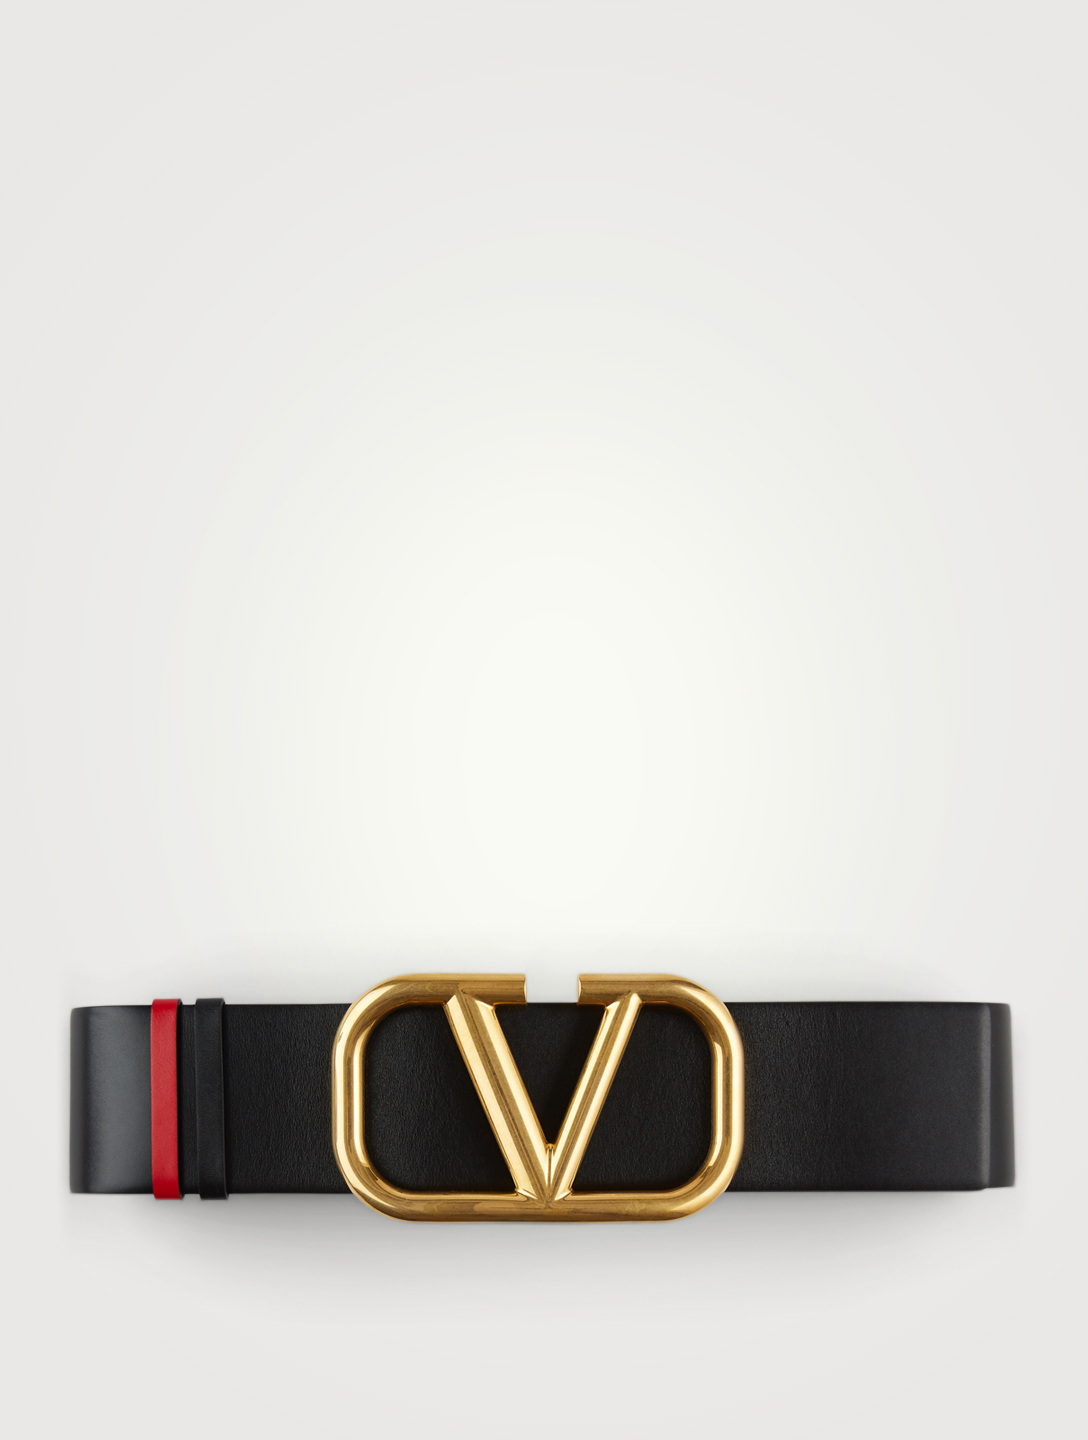 VALENTINO GARAVANI Leather VLogo Belt Women's Black